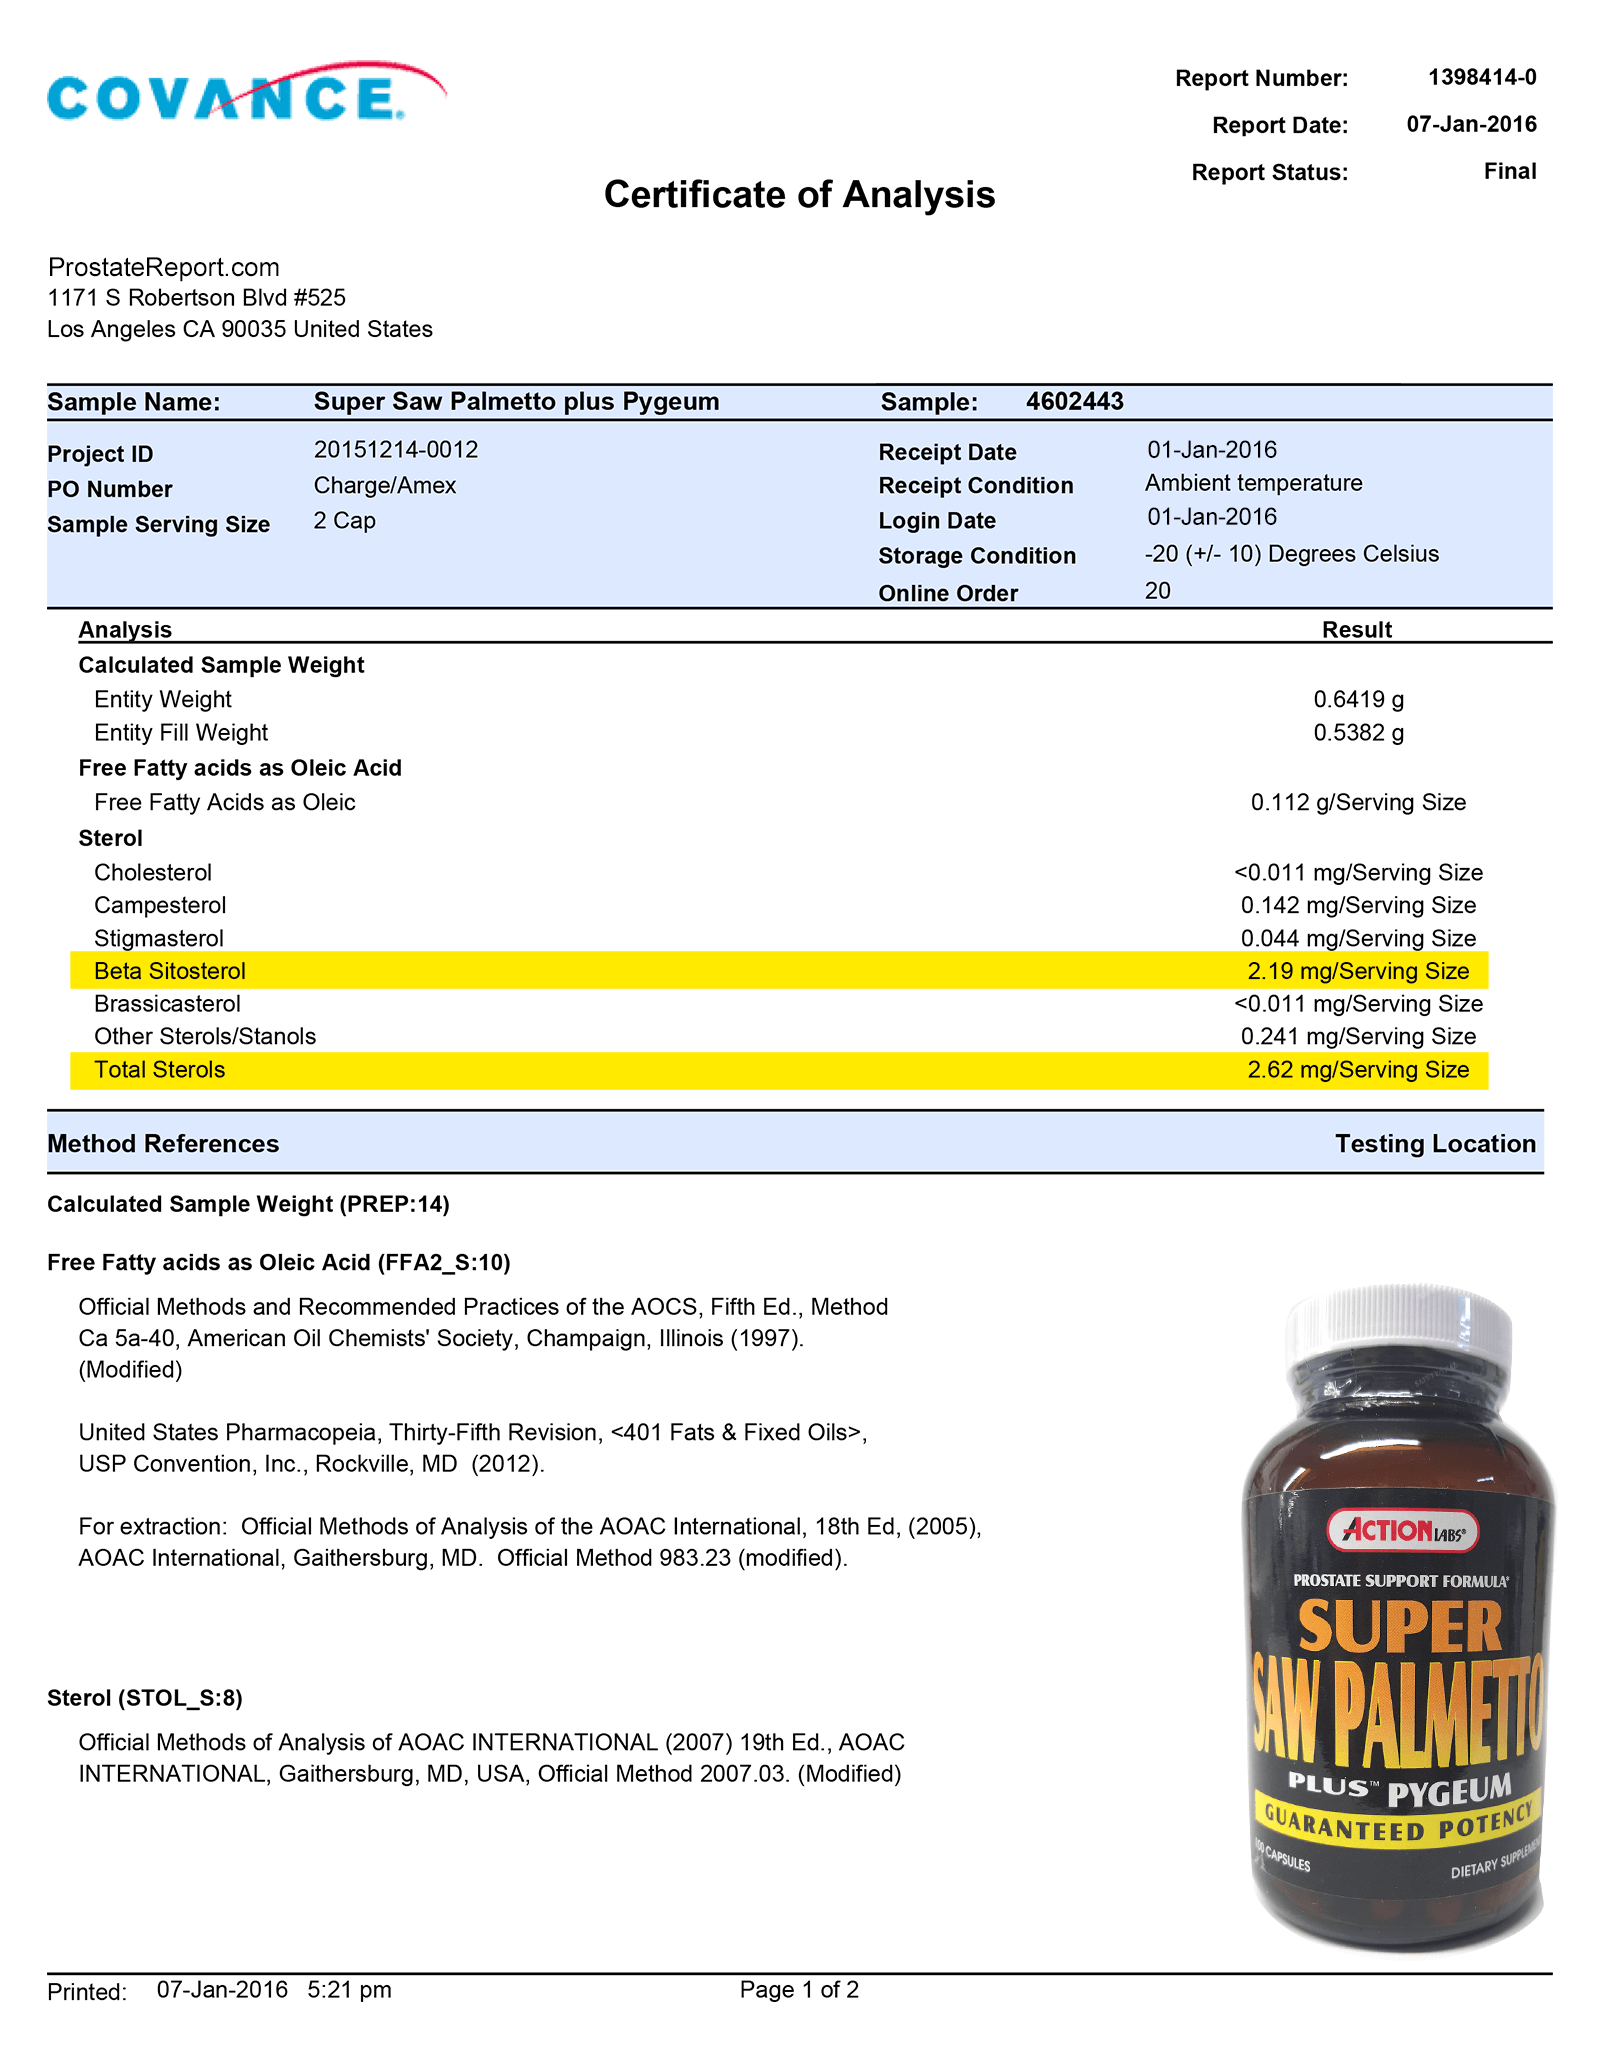 Super Saw Palmetto Plus Pygeum lab report